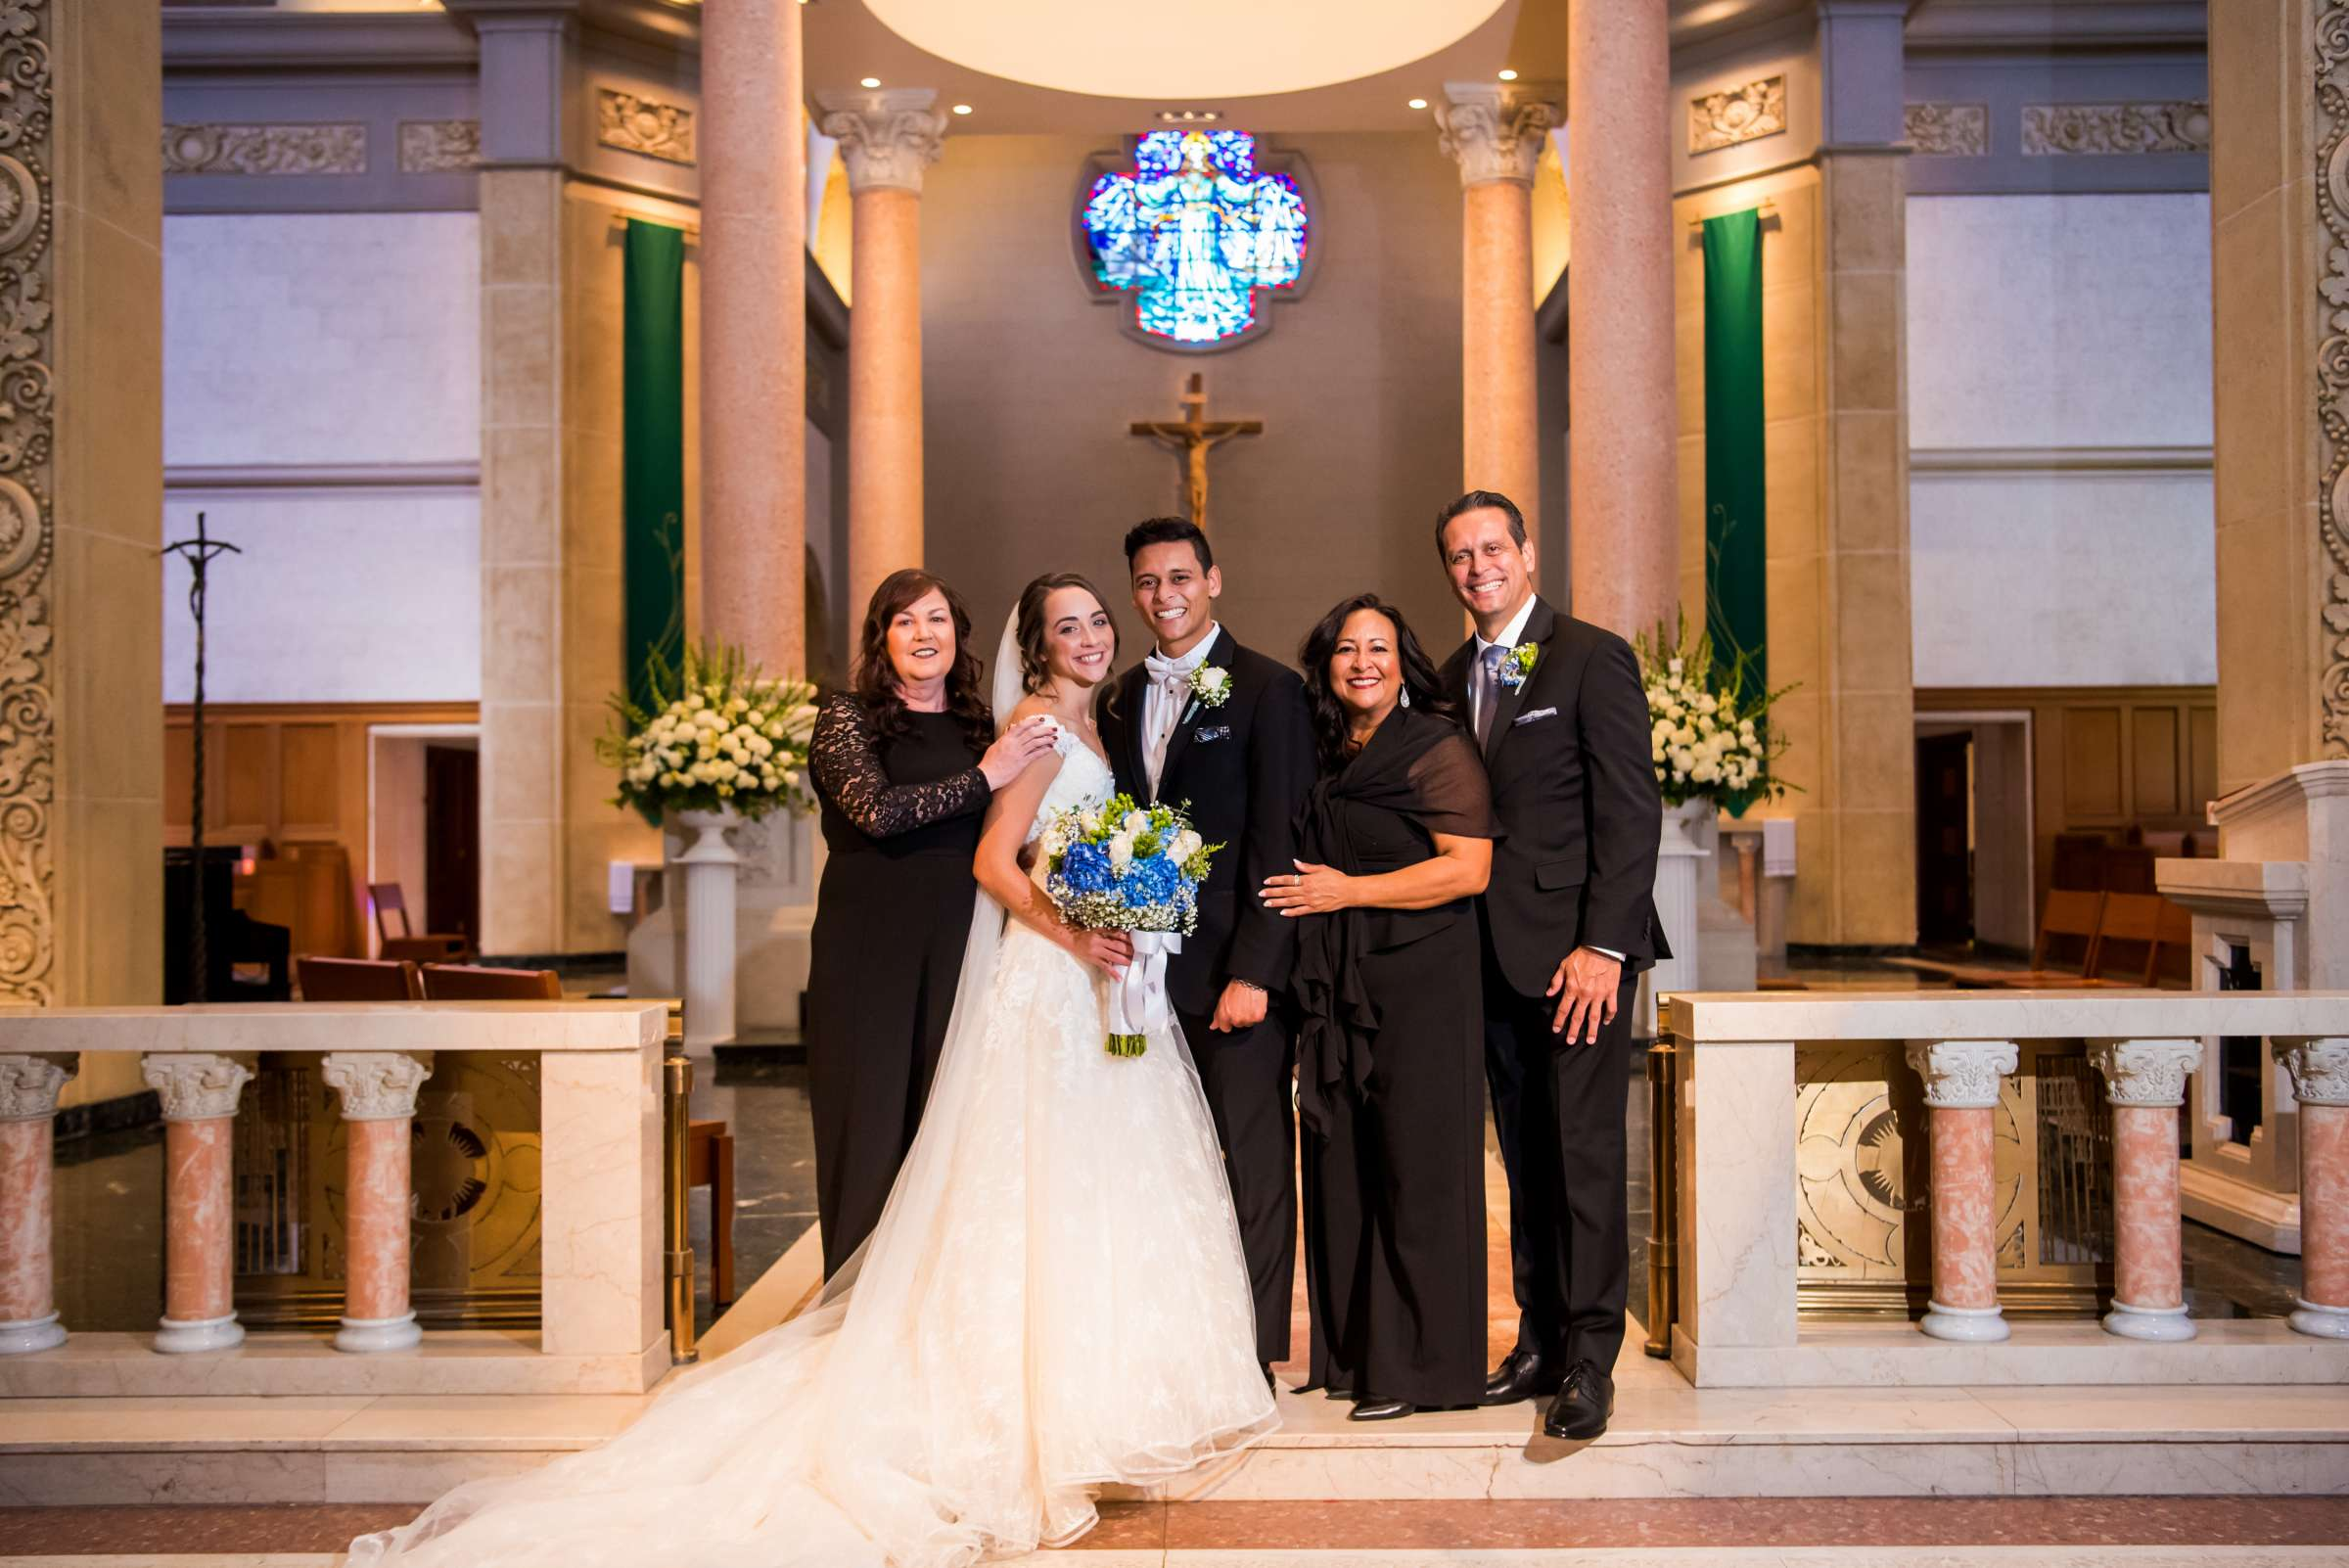 The Immaculata Wedding, Arianna and Jonah Wedding Photo #137 by True Photography